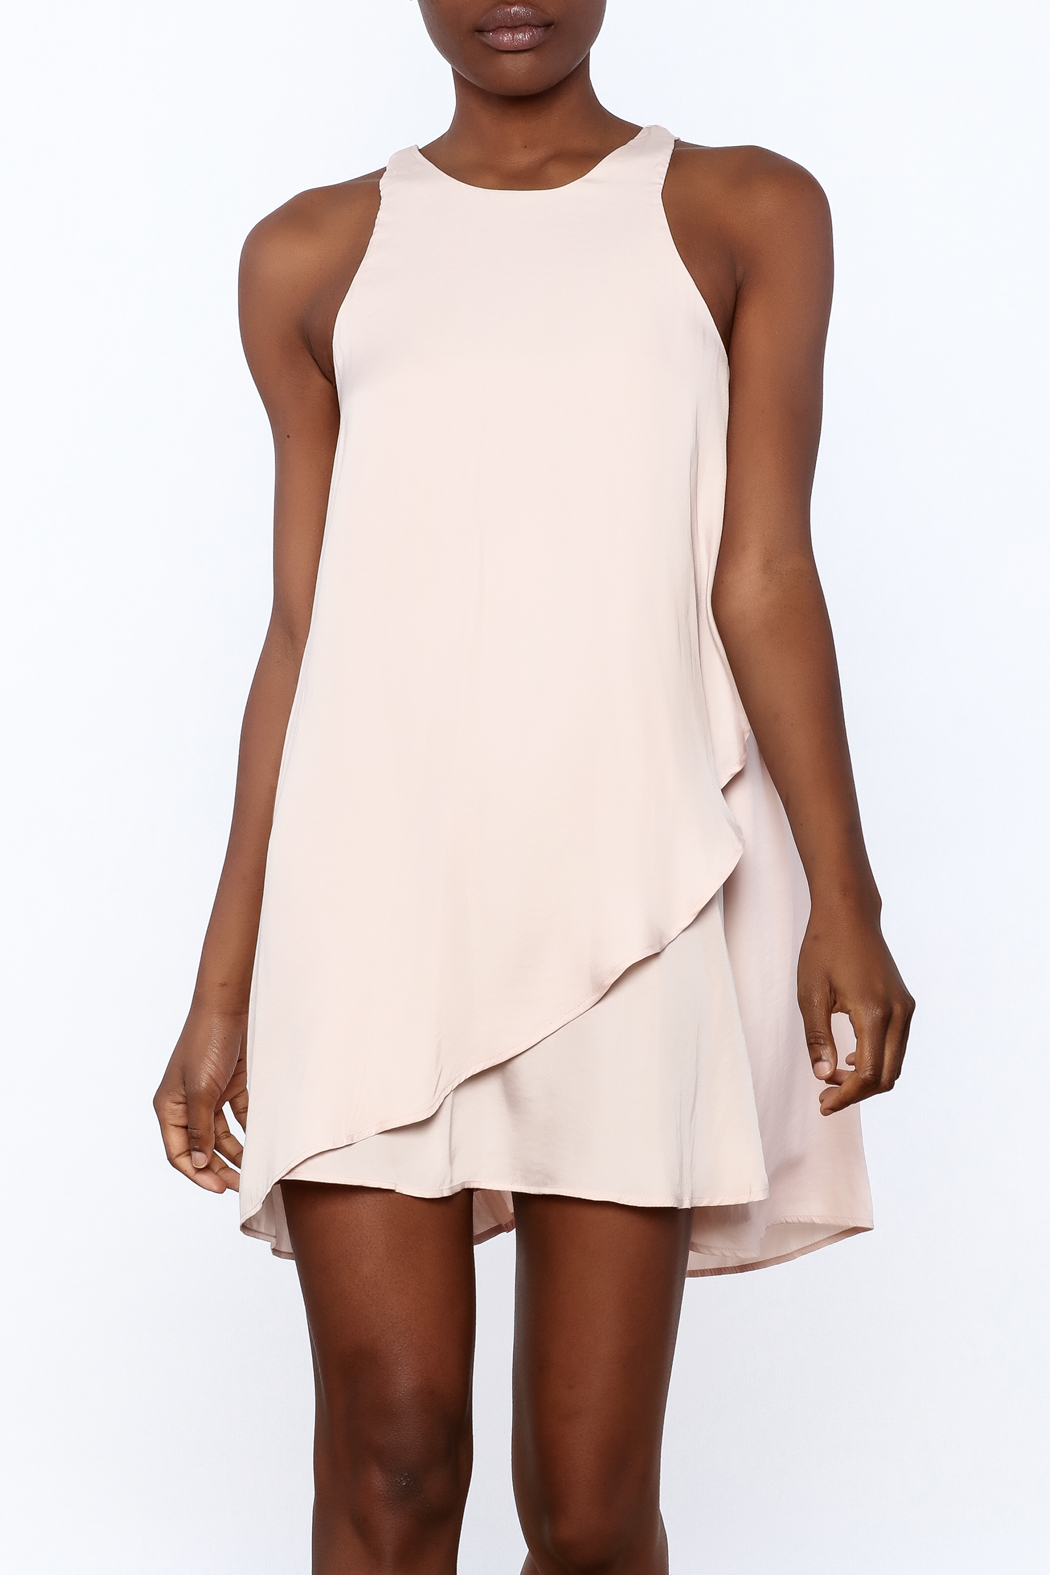 Bio Blush Pink Tulip Dress - Main Image